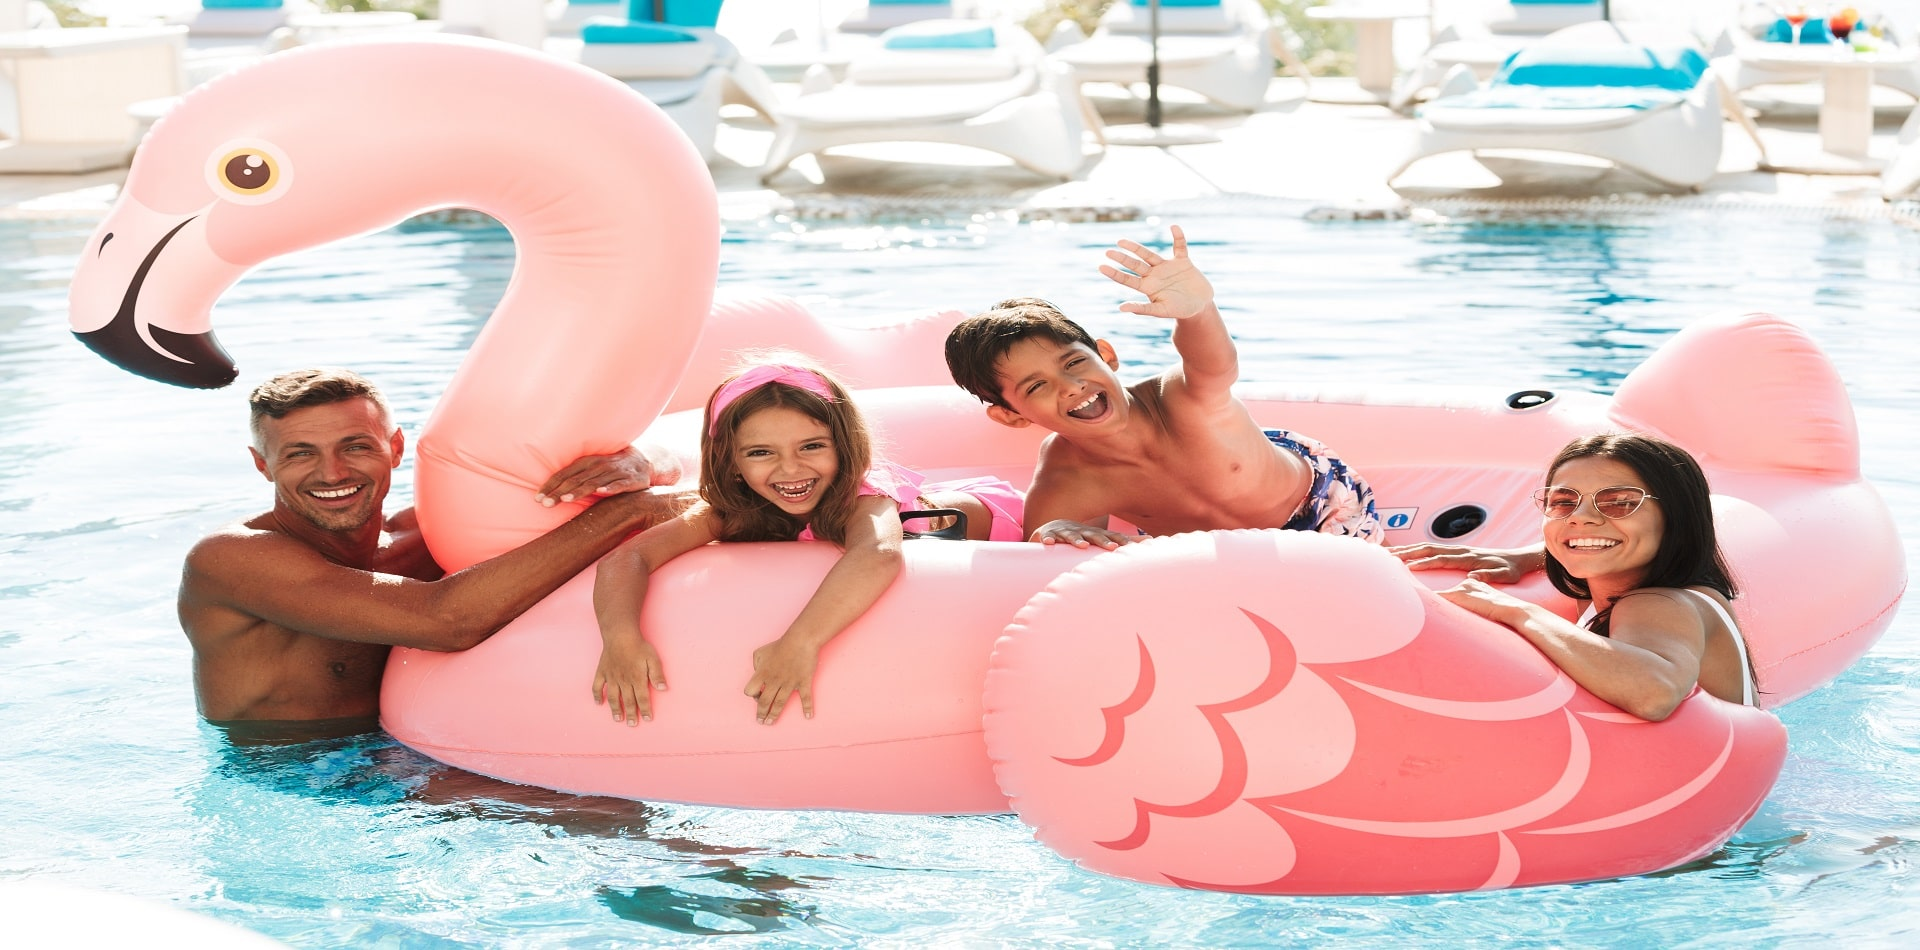 swimming with inflatable flamingo